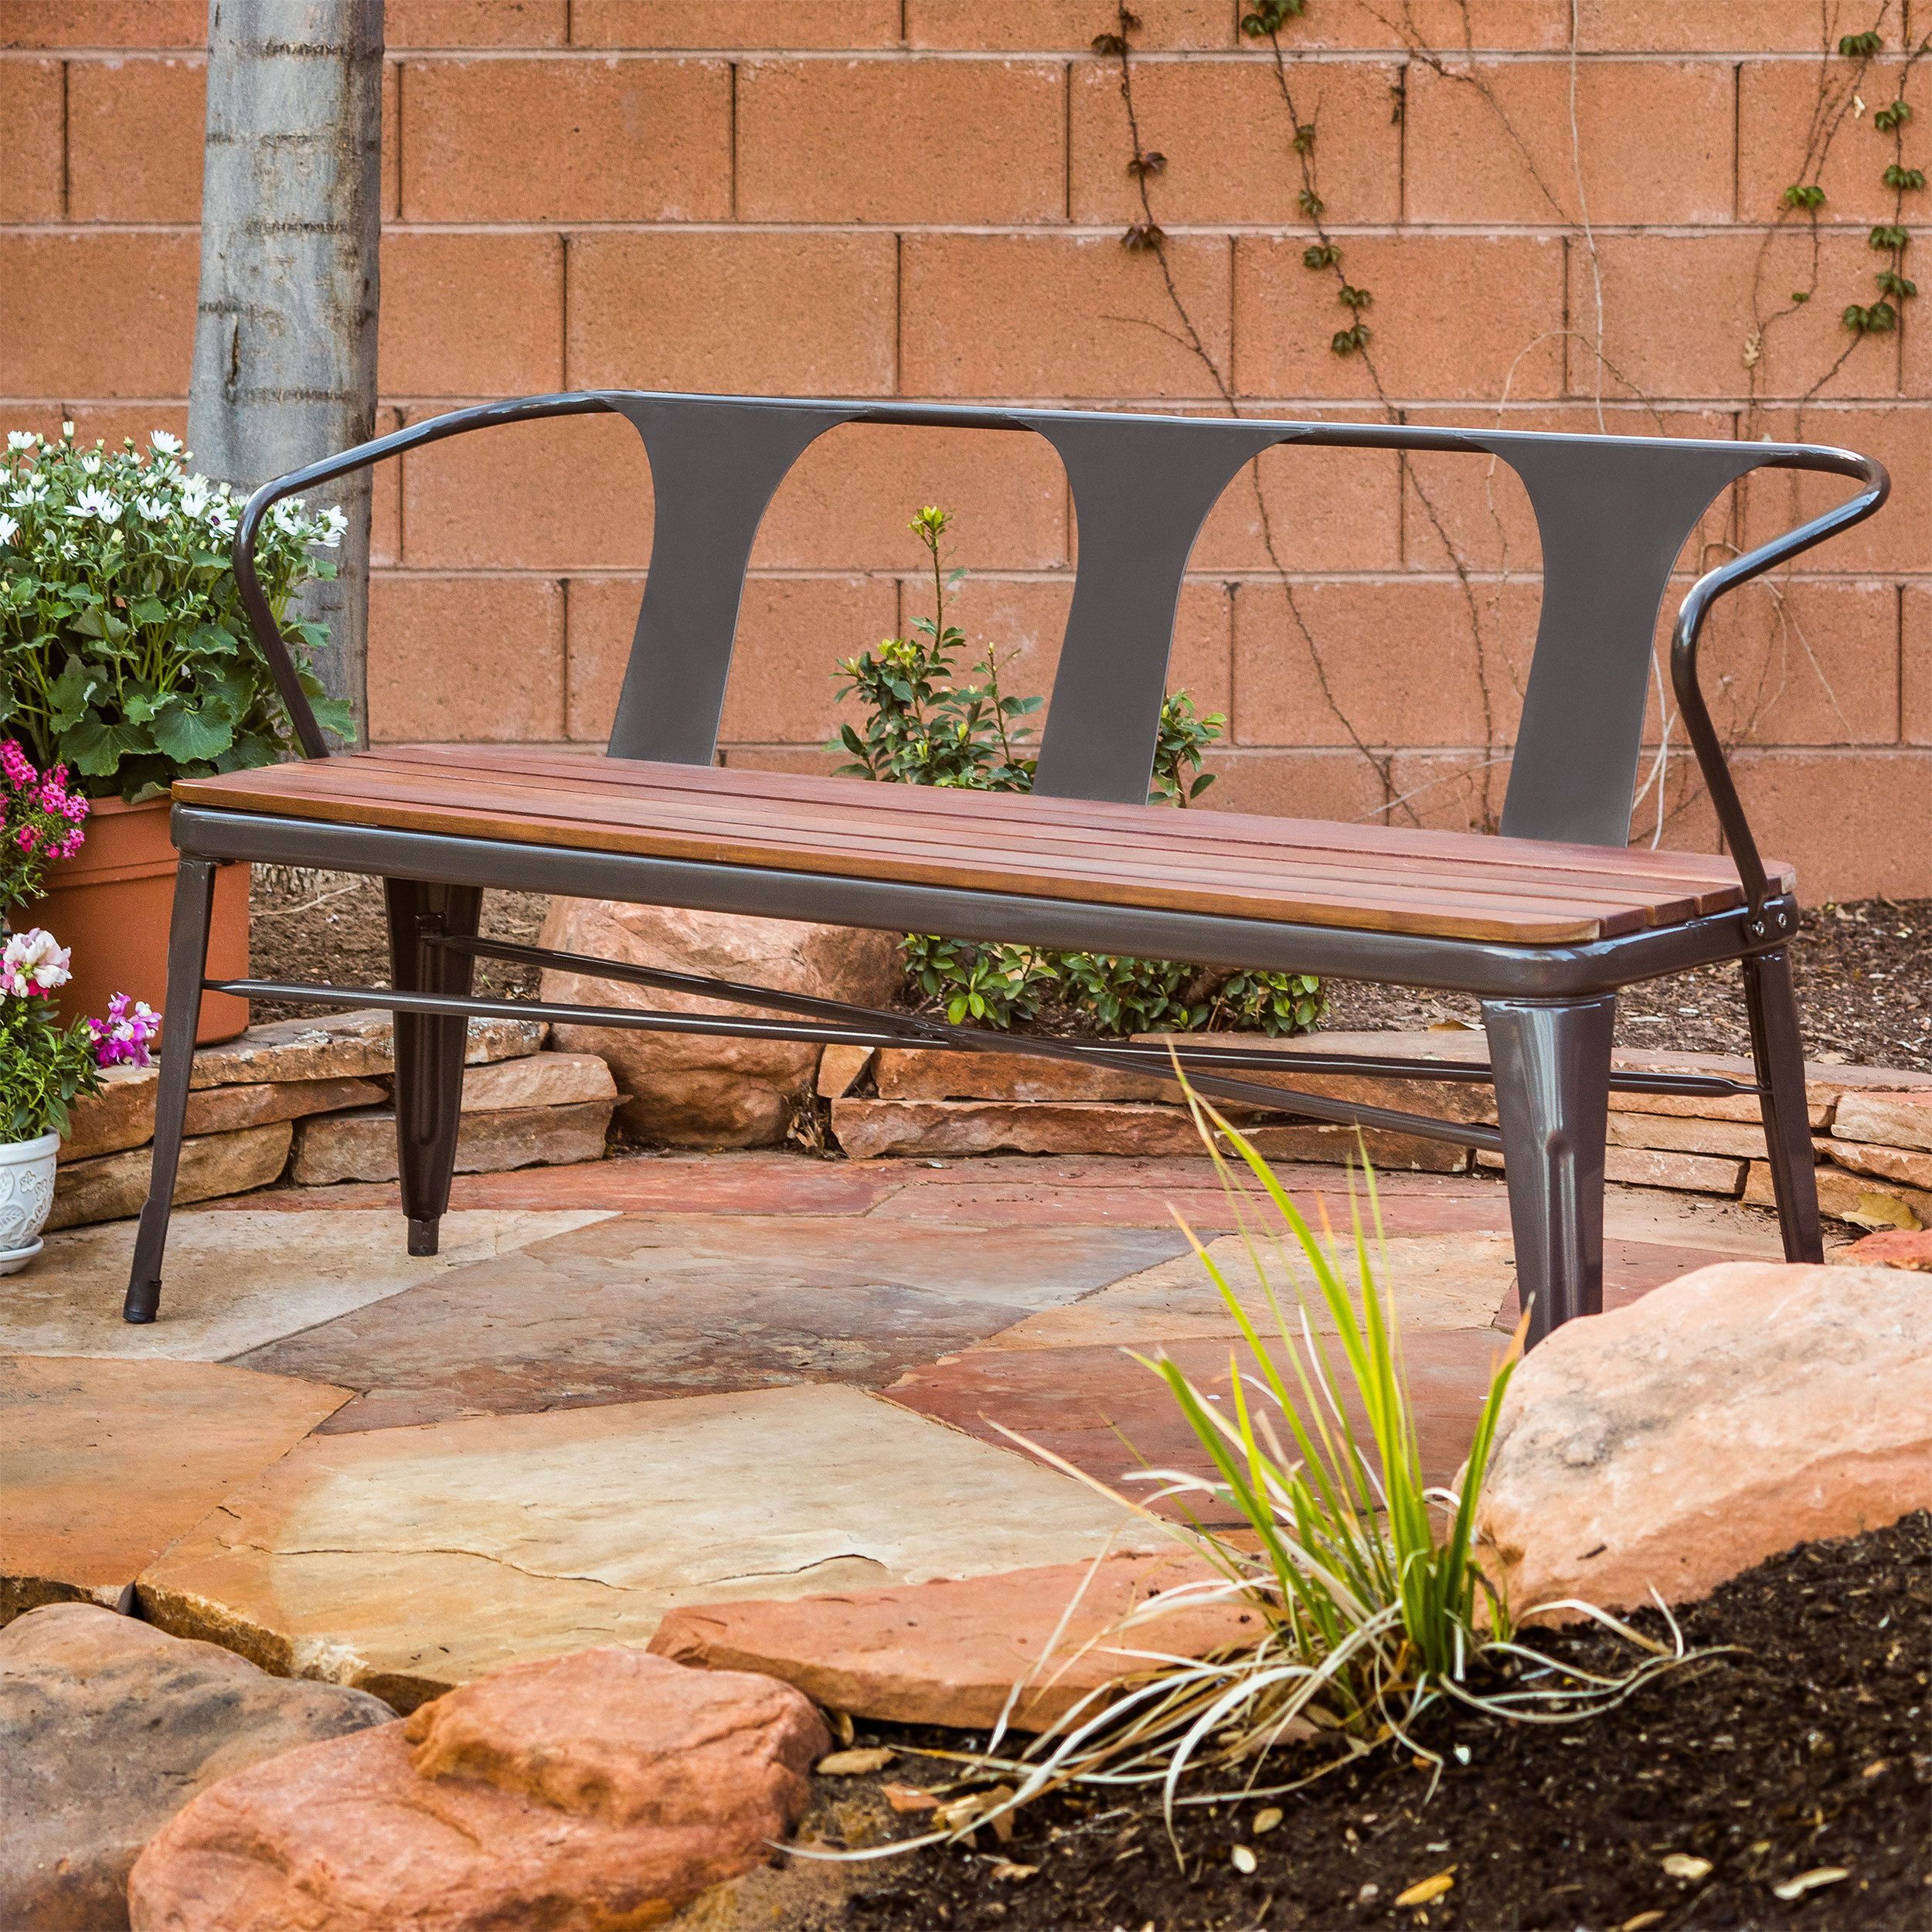 Patio Furniture: Free Shipping On Orders Over $45! Shop The Best Selection  Of Outdoor